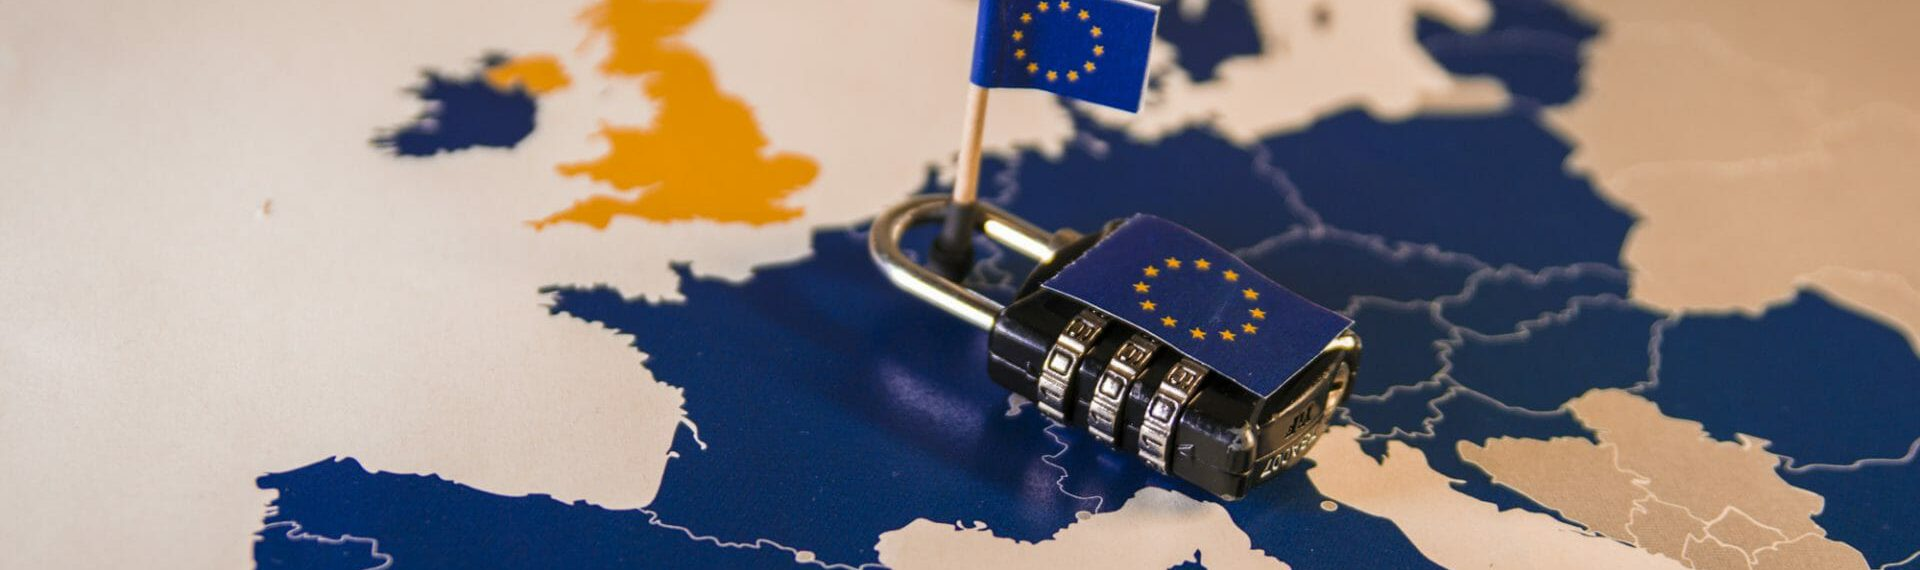 A Guide To GDPR: How Will The New Changes Affect Your Trade Business?